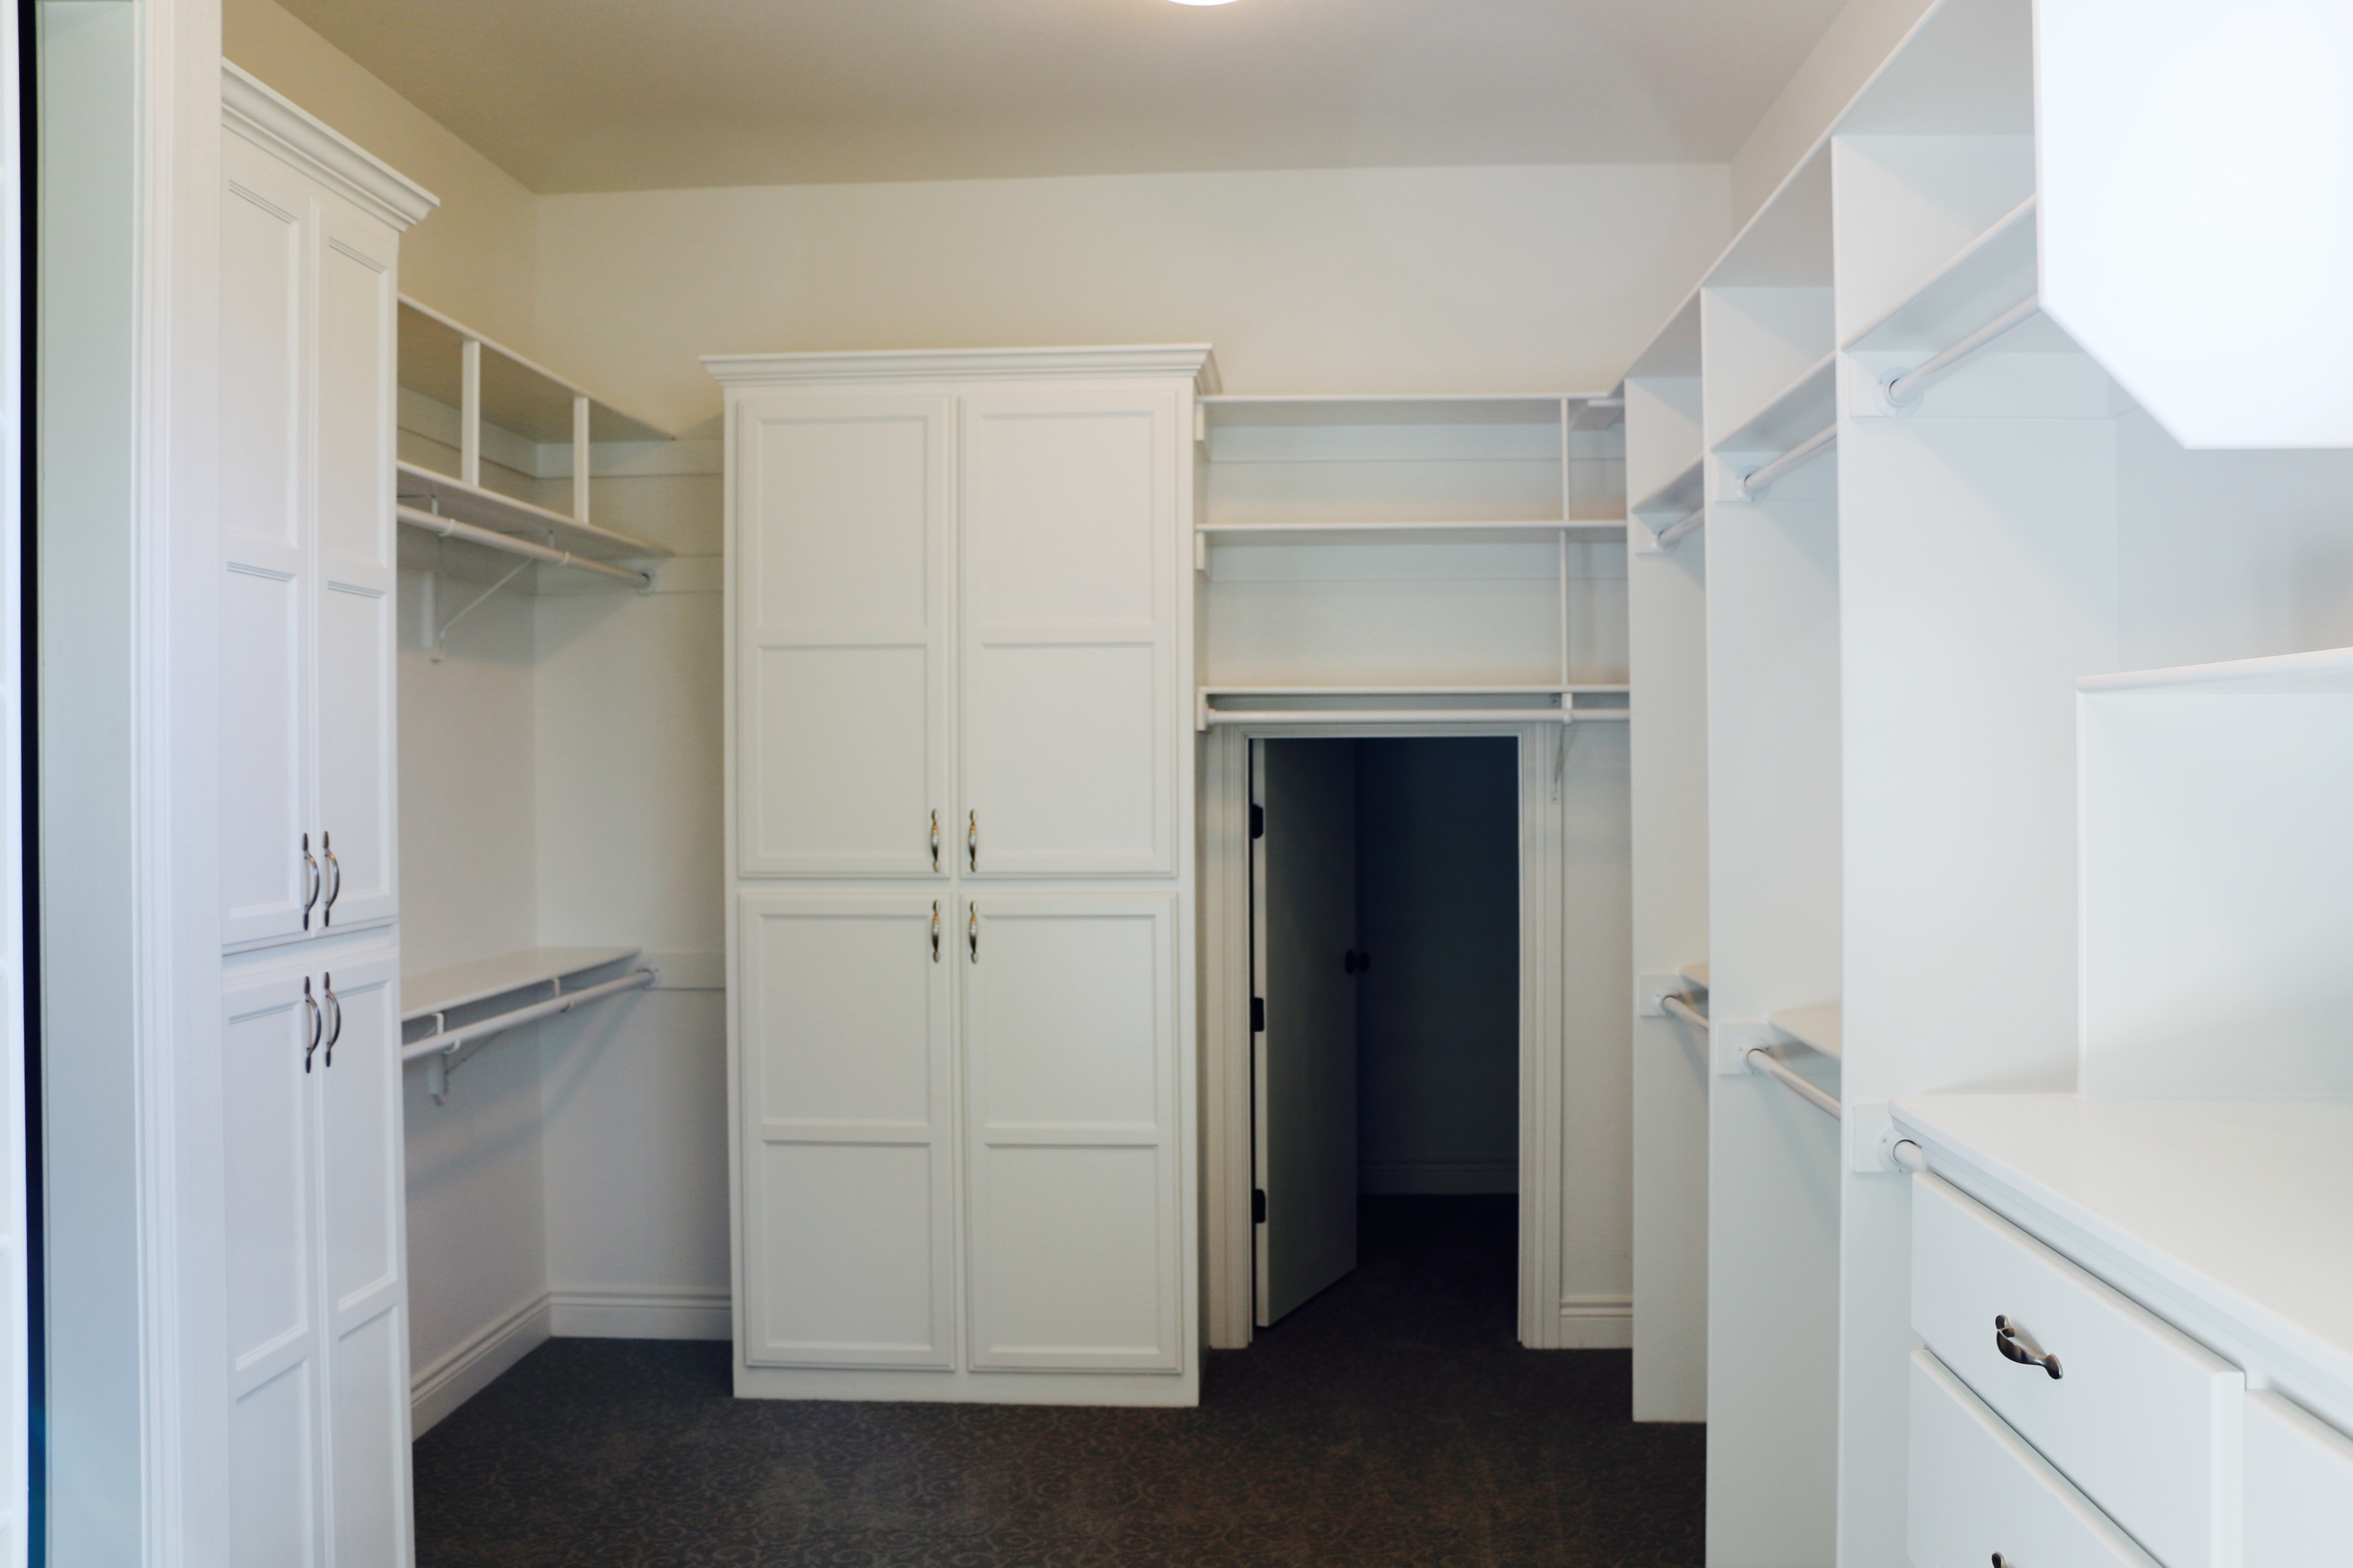 Built-in cabinets in master closet